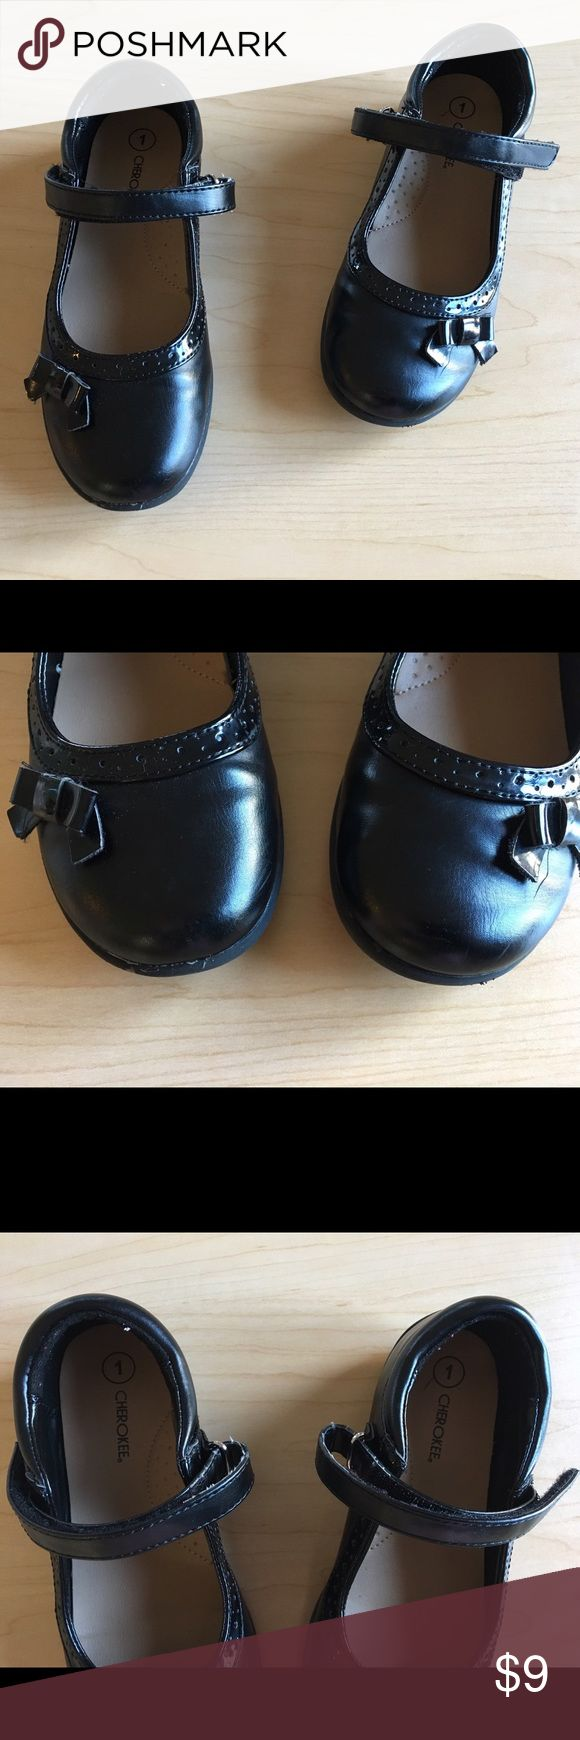 Black Mary Jane Girls Shoes Size 1 Black Mary Jane girls shoes size 1.  By Cherokee.  Straps have Velcro latching across.  Excellent condition with no scuff marks!  Worn only twice! Great for any dress and special occasions!  A must have in any little girls closet! Shoes Dress Shoes